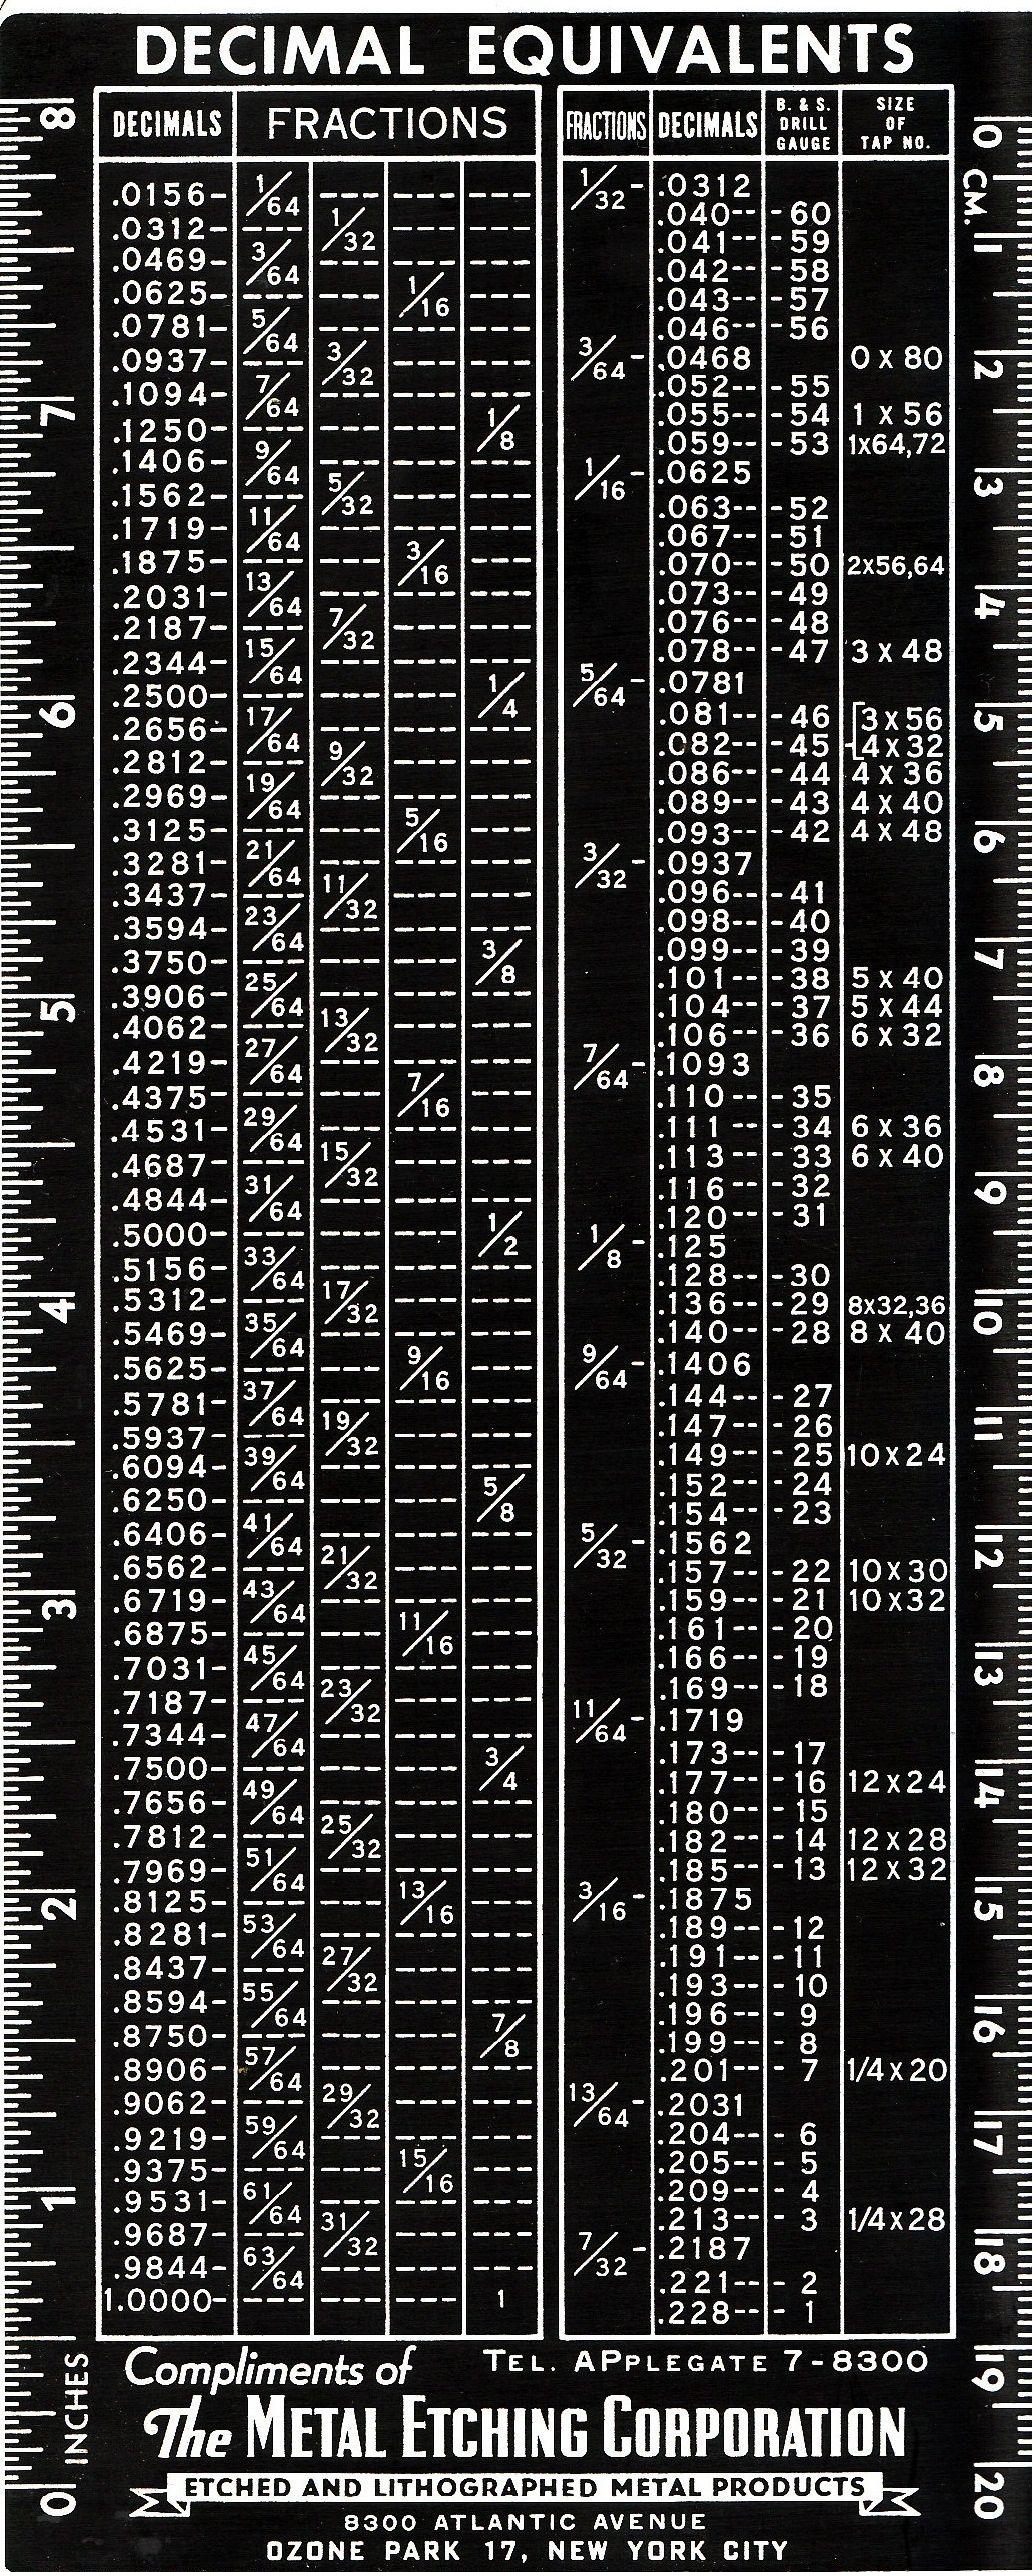 Pin by james on tipsideasdiy pinterest woodworking chart and inchs to decimal greentooth Images